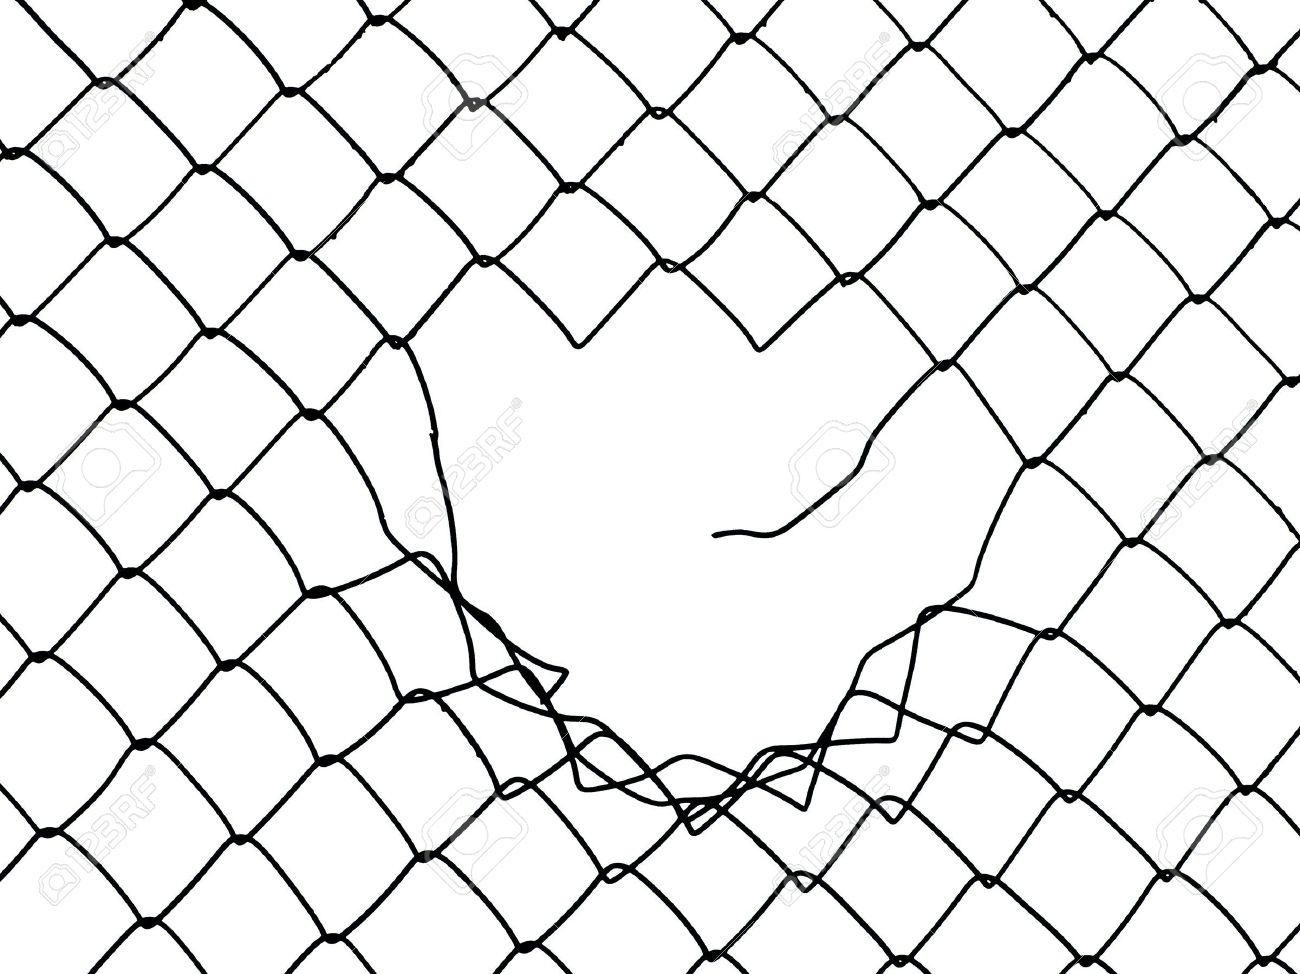 Barbed Wire Fence Drawing At Getdrawings